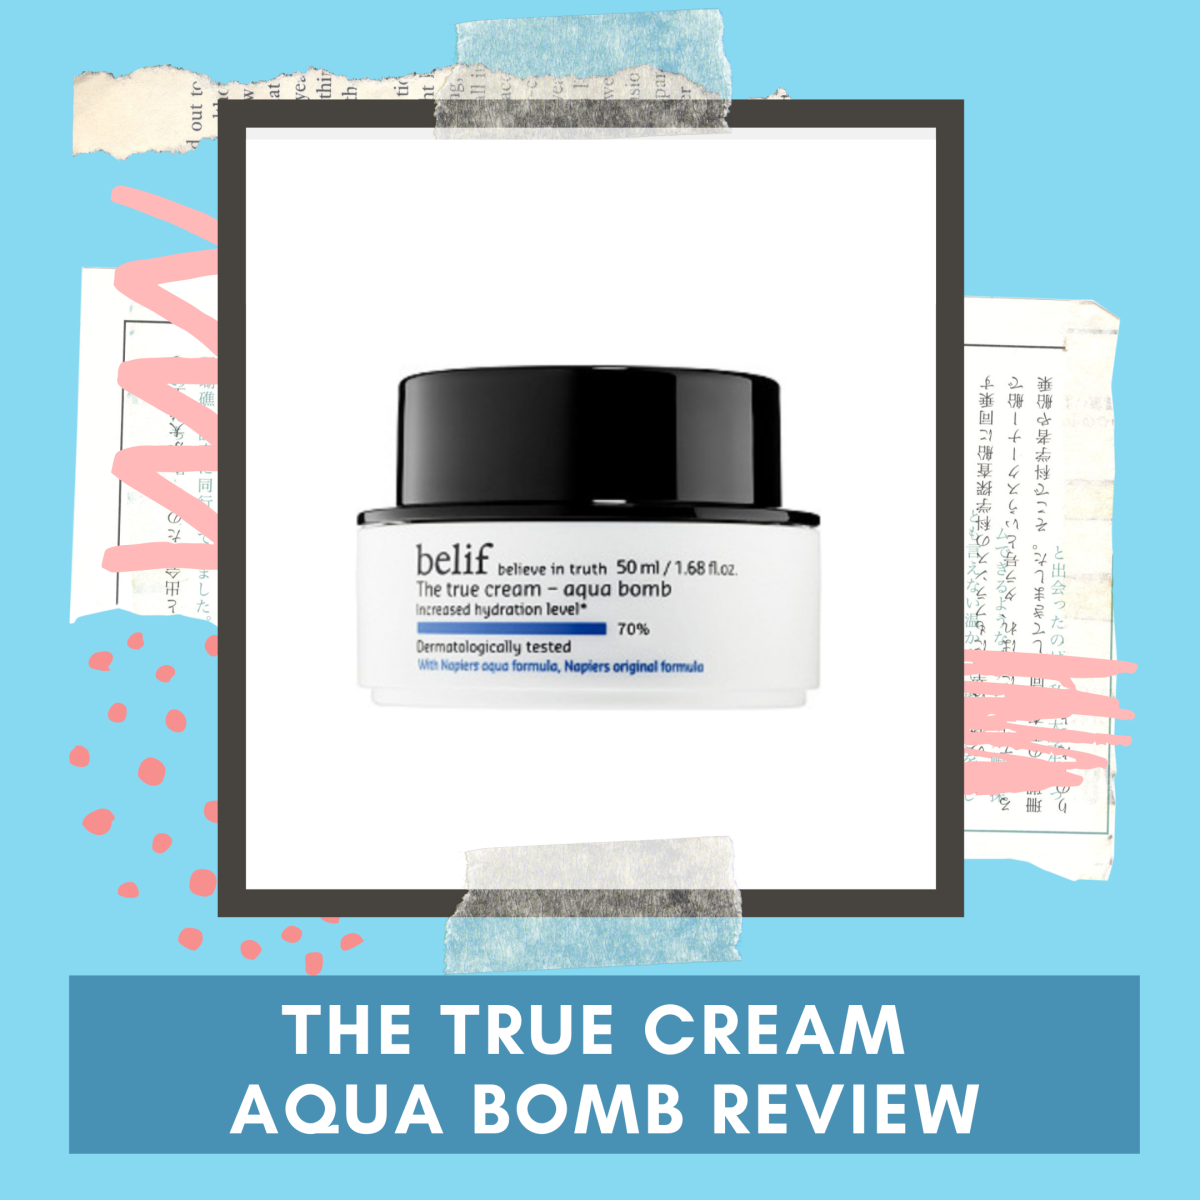 belif-the-true-cream-aqua-bomb-review